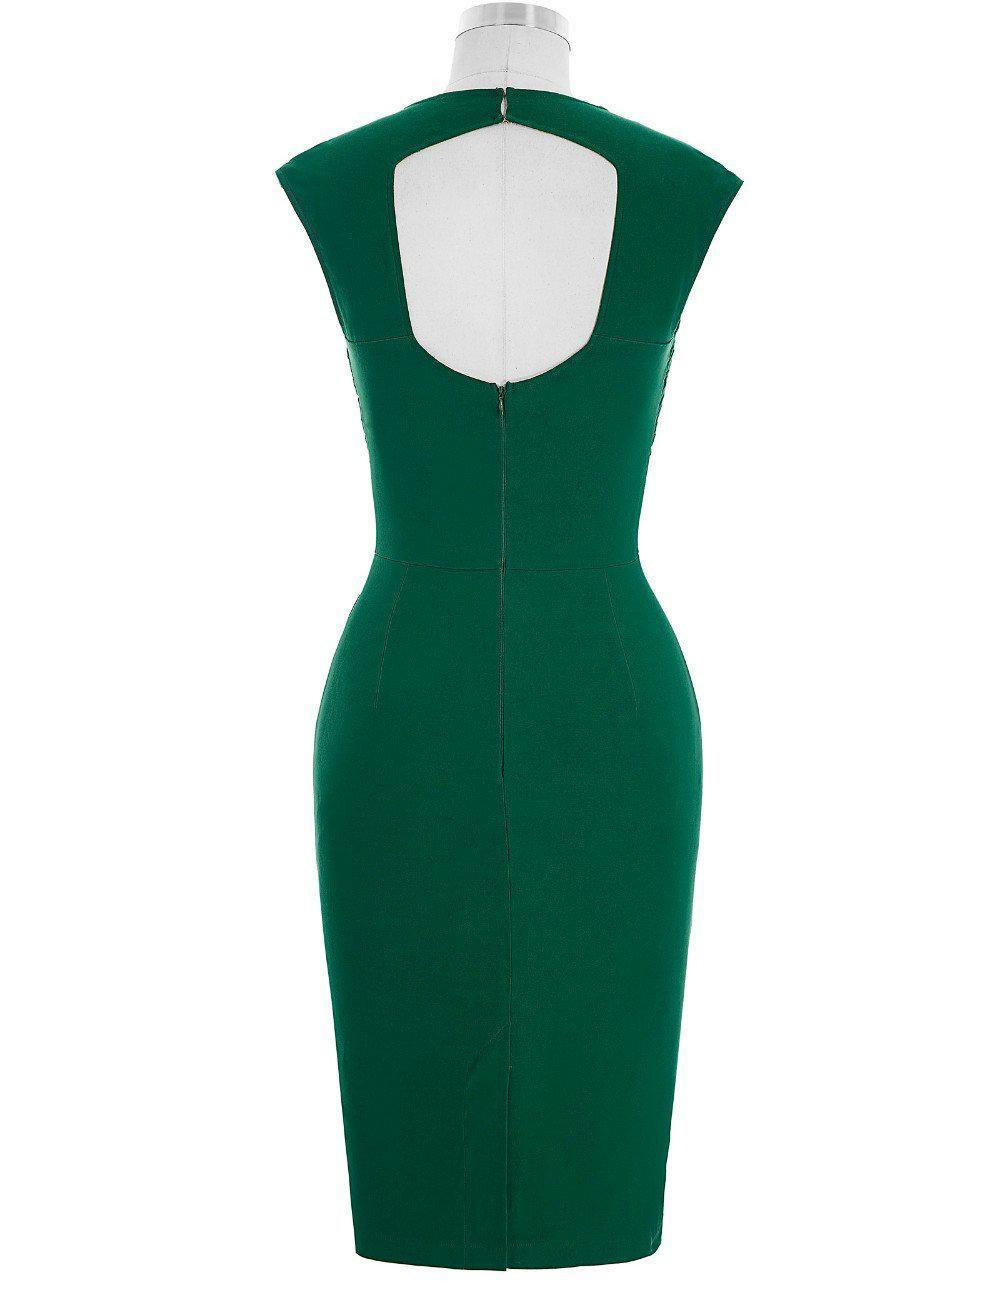 Elegant Sleeveless Bodycon Dress-Dress-SheSimplyShops